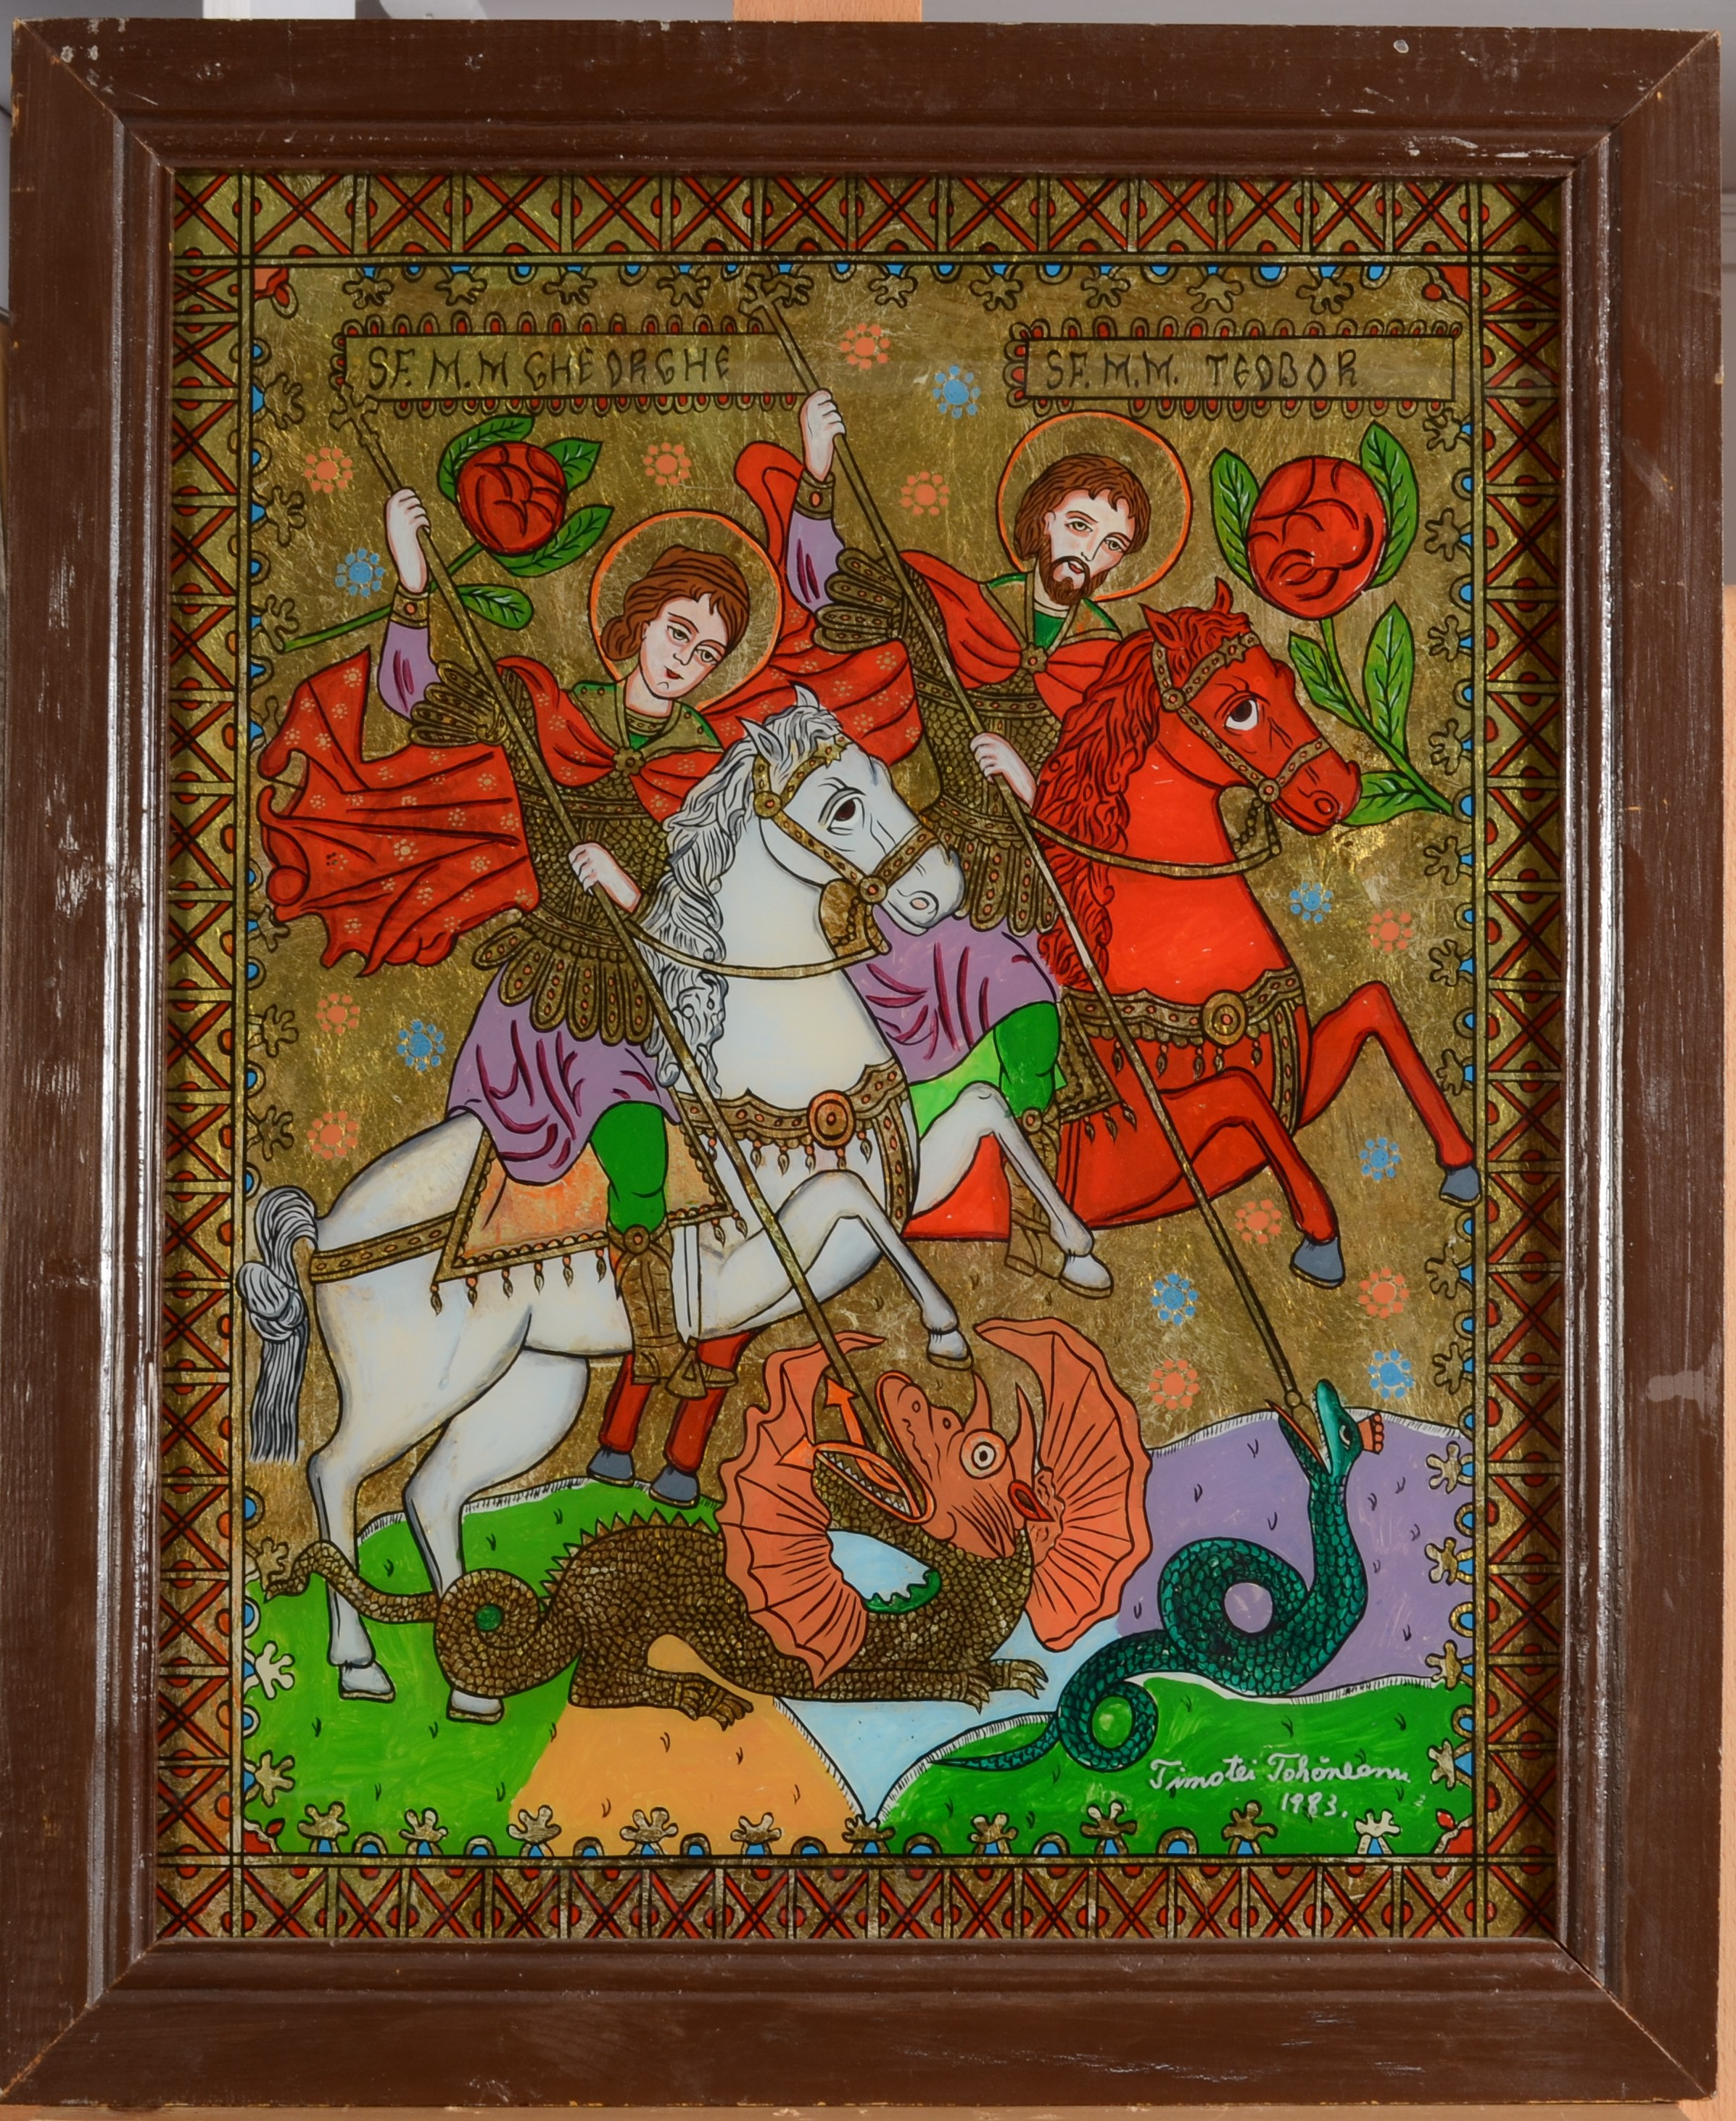 Lot 27 - FATHER TIMOTEI TOHANEANU Saint George and Theodor Painting on glass Signed and dated Certificate